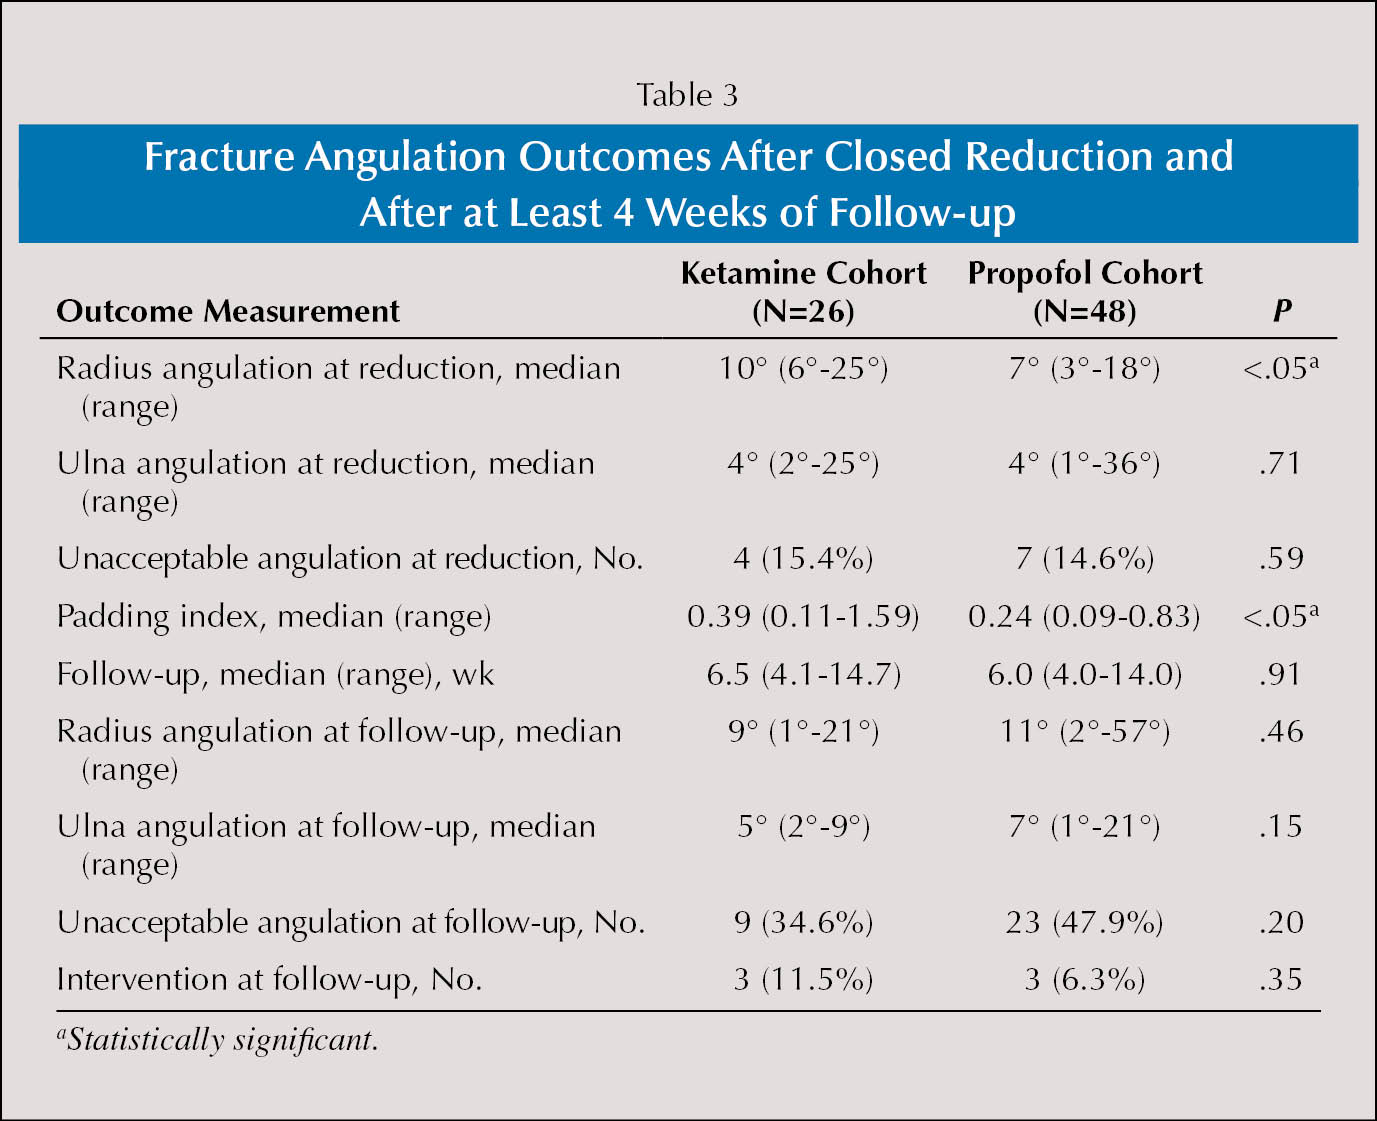 Fracture Angulation Outcomes After Closed Reduction and After at Least 4 Weeks of Follow-up